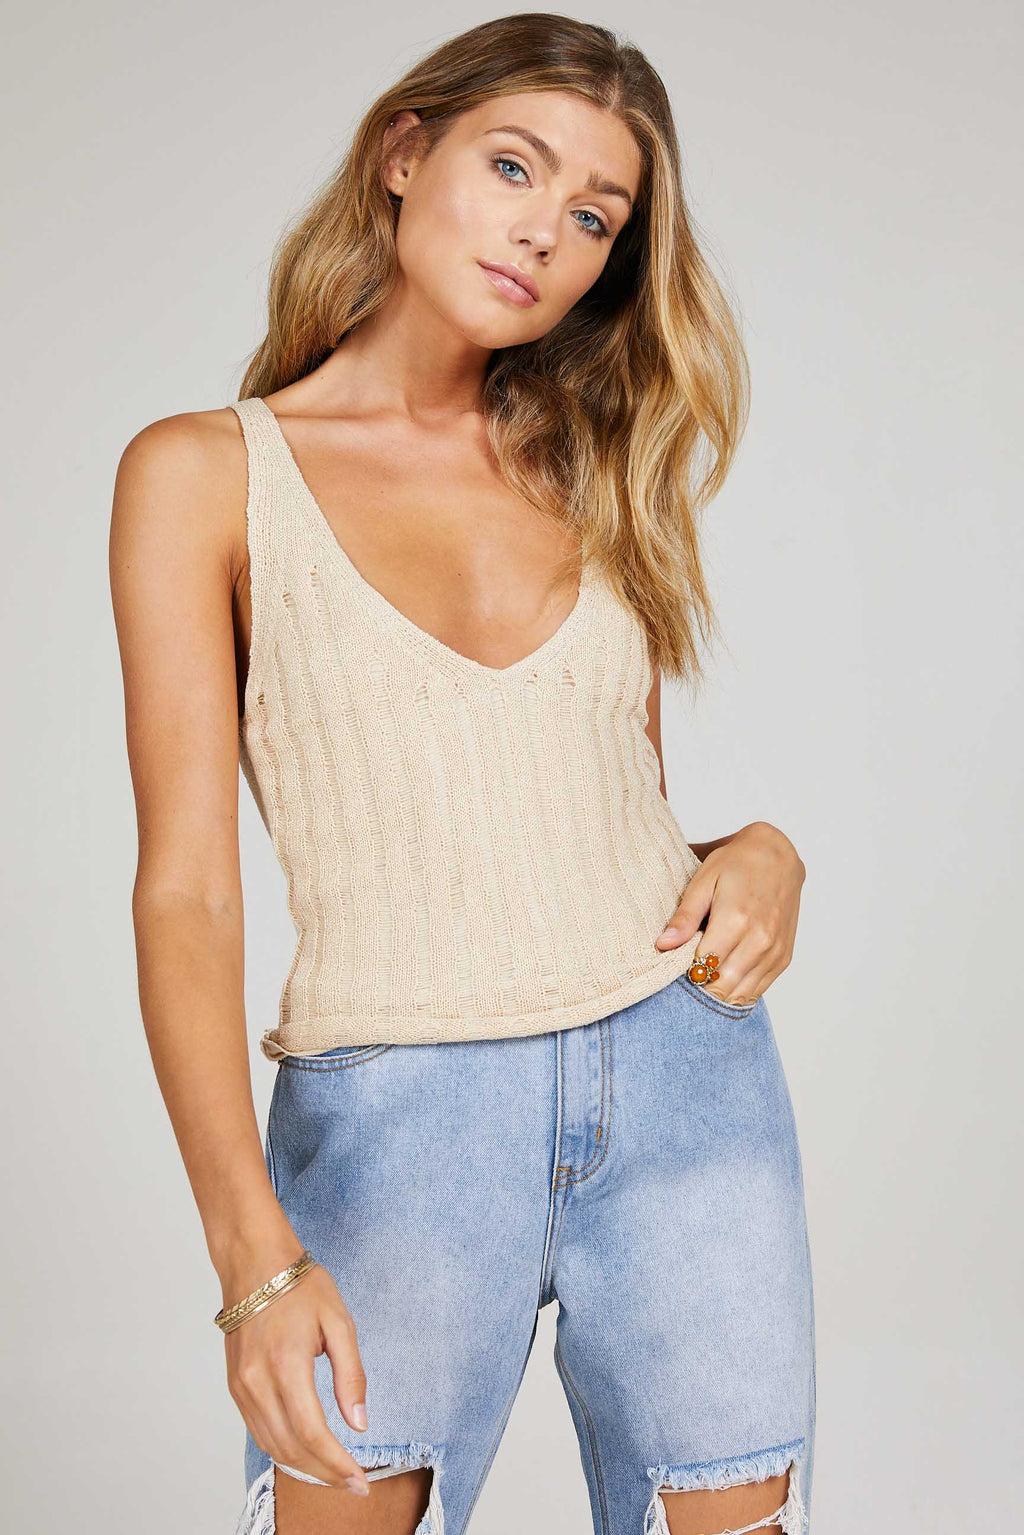 Sage the Label - Laguna Knit Tank, , Too Tempted - Too Tempted